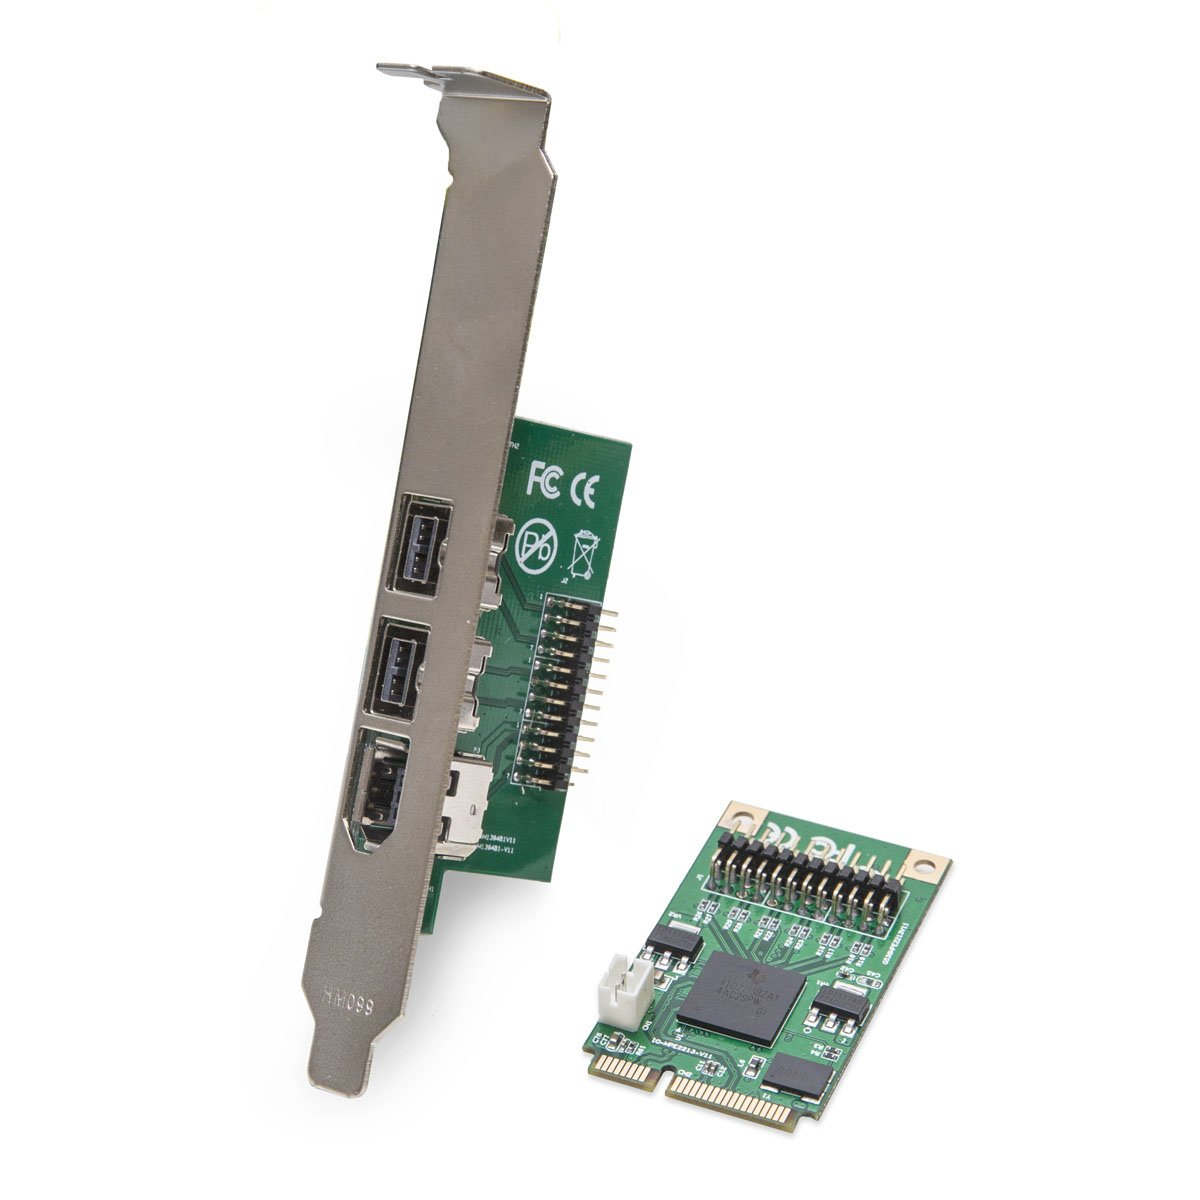 I/O Crest 2 Port 1394B FireWire800 and 1 Port Firewire400 1394A to Mini PCIe Controller Card Components (SI-MPE30018)